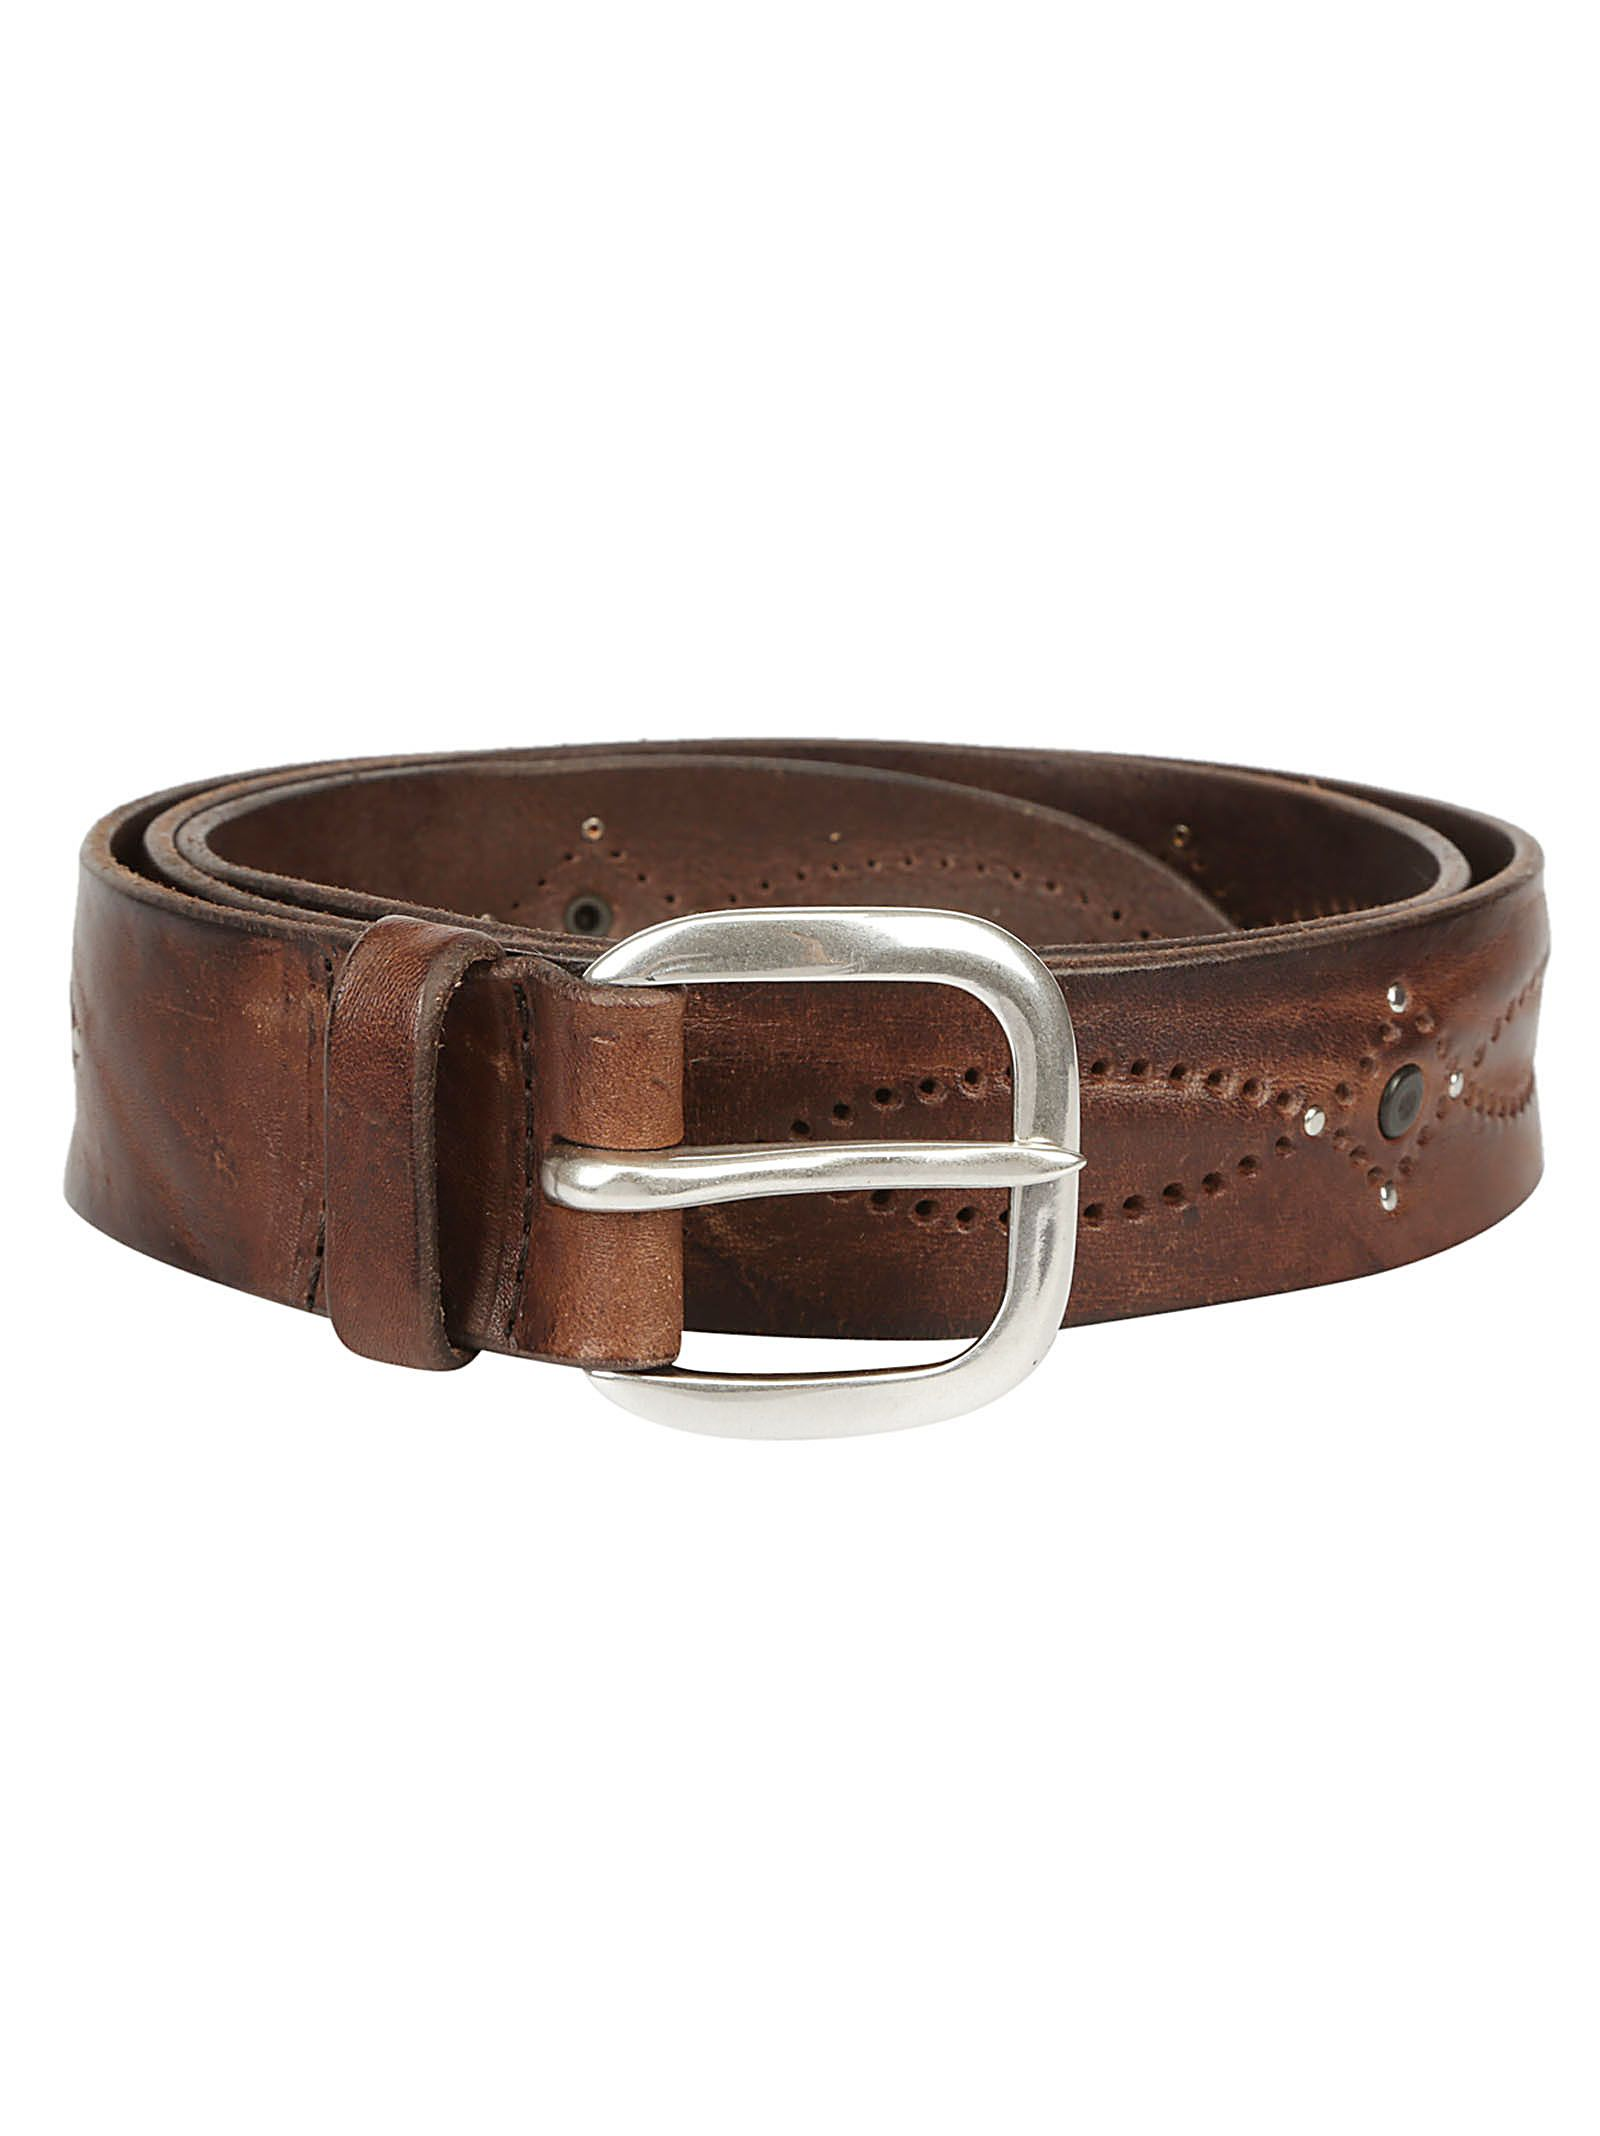 Orciani Perforated Belt